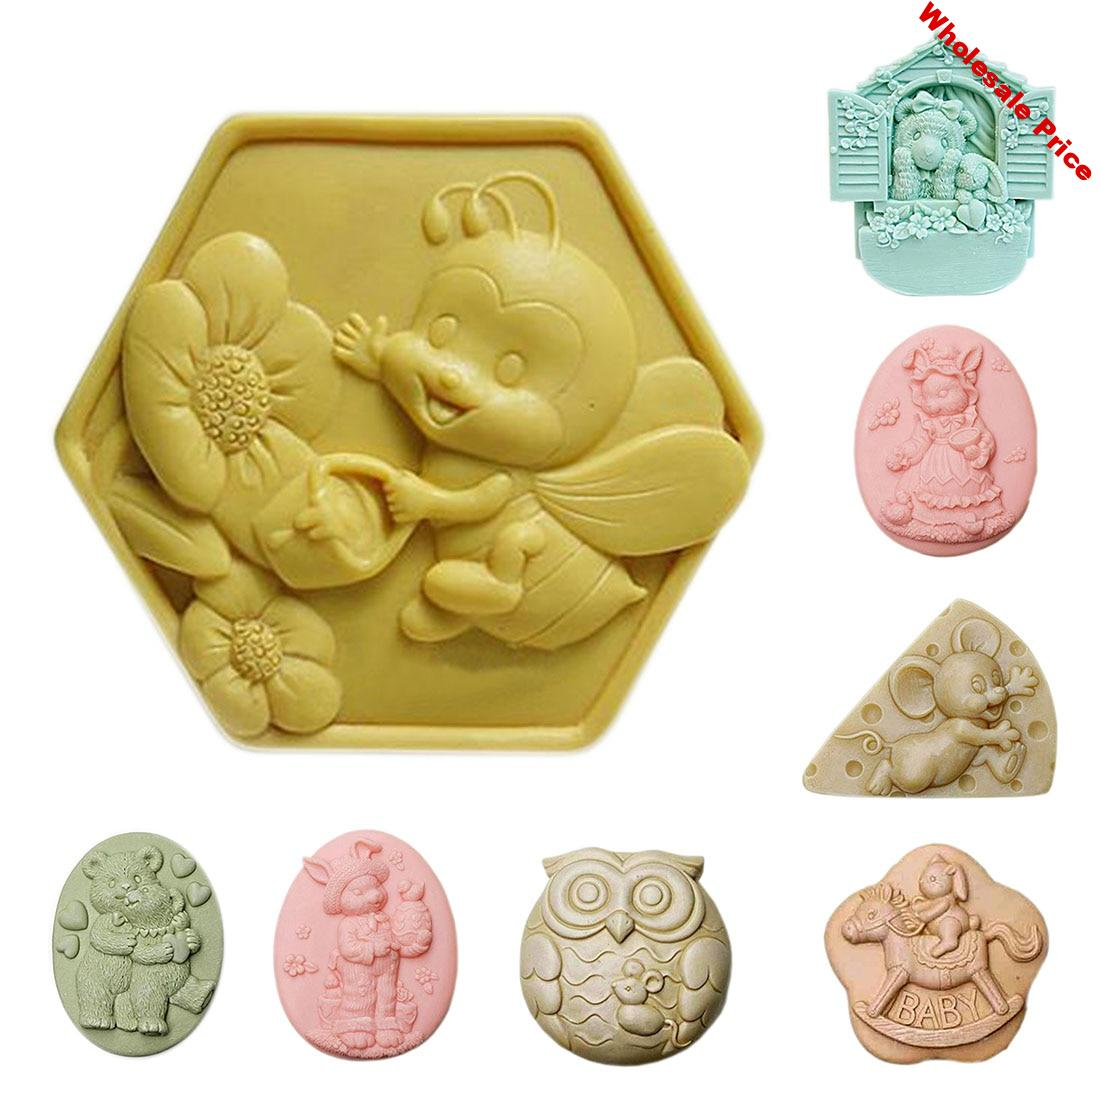 Animal Soap Silicon Molds Bee Soap Form Rabbit Soap Making Supplies Owl Soap Mold Bear Silicone Mold Soap